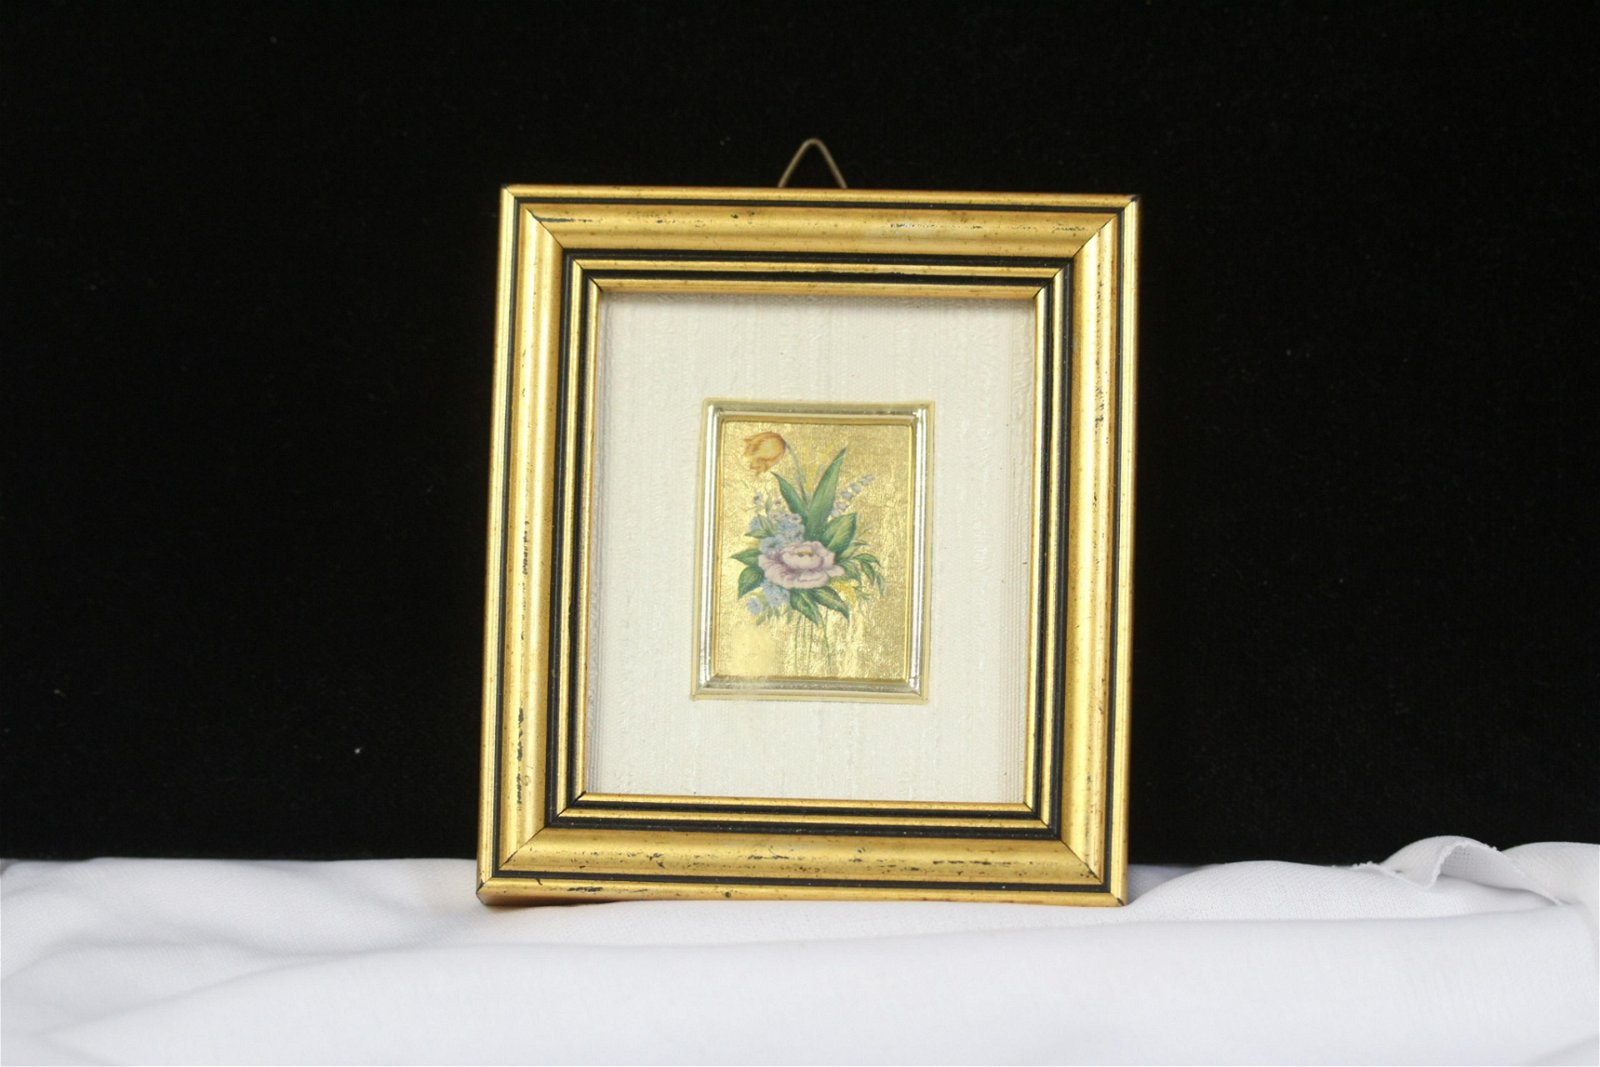 A Miniature Frame Art